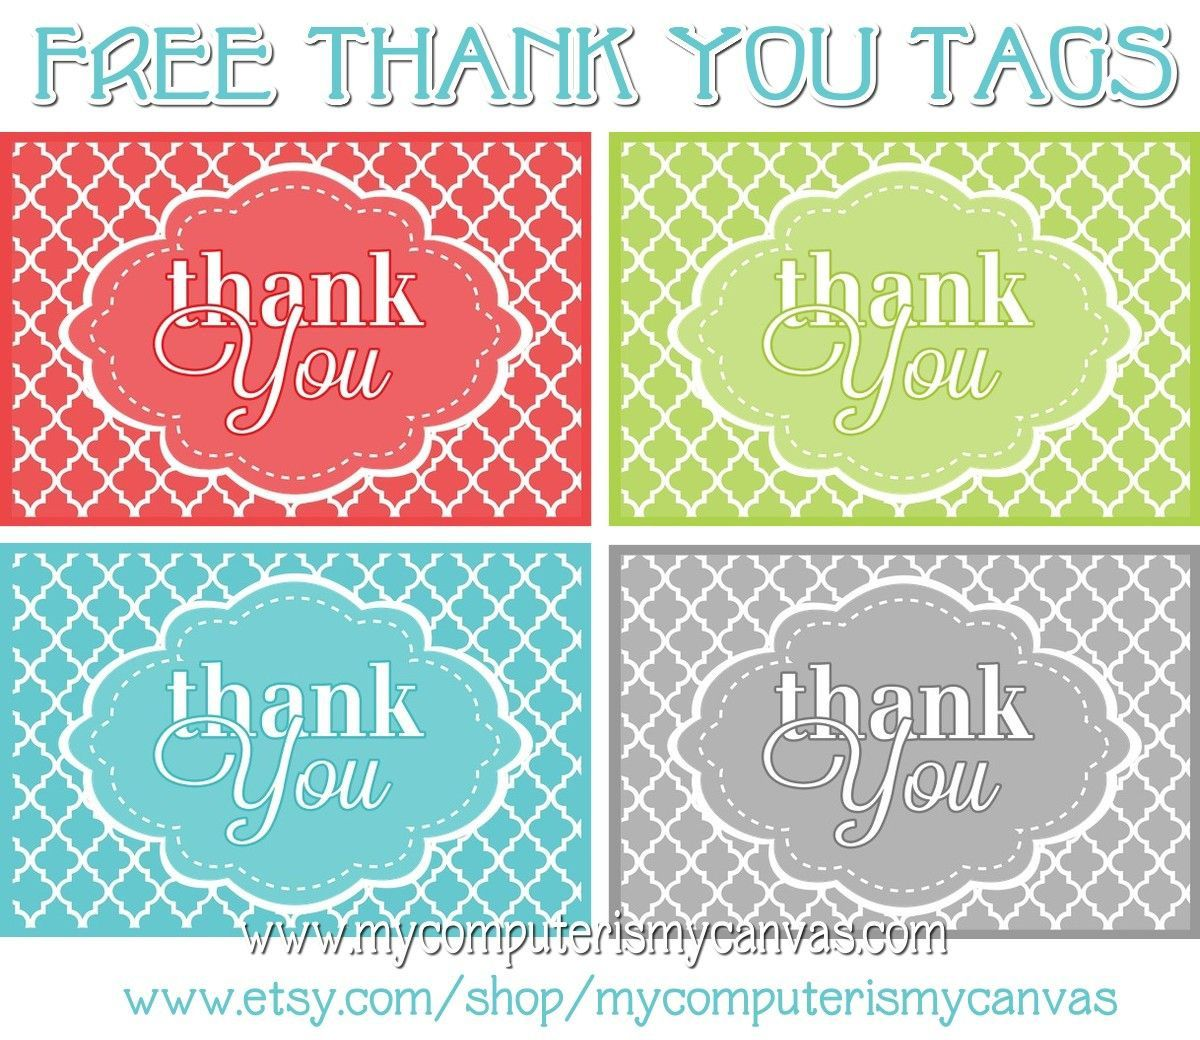 002 Unusual Free Printable Thank You Gift Tag Template High Definition  TemplatesFull